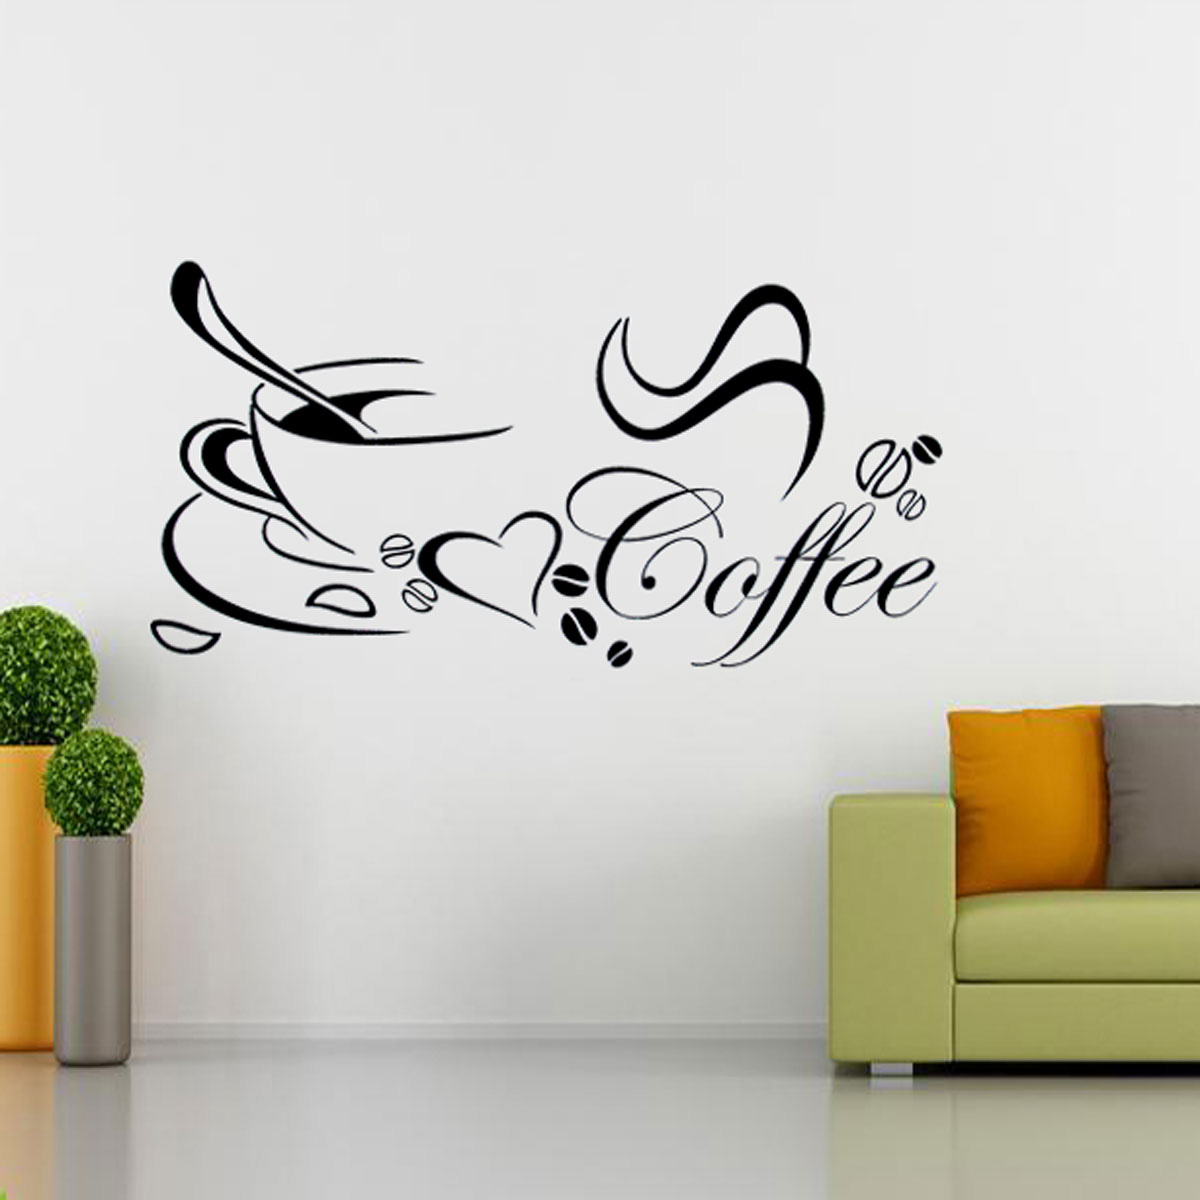 diy removable coffee cup quote word decal vinyl home kitchen decor wall sticker ebay. Black Bedroom Furniture Sets. Home Design Ideas